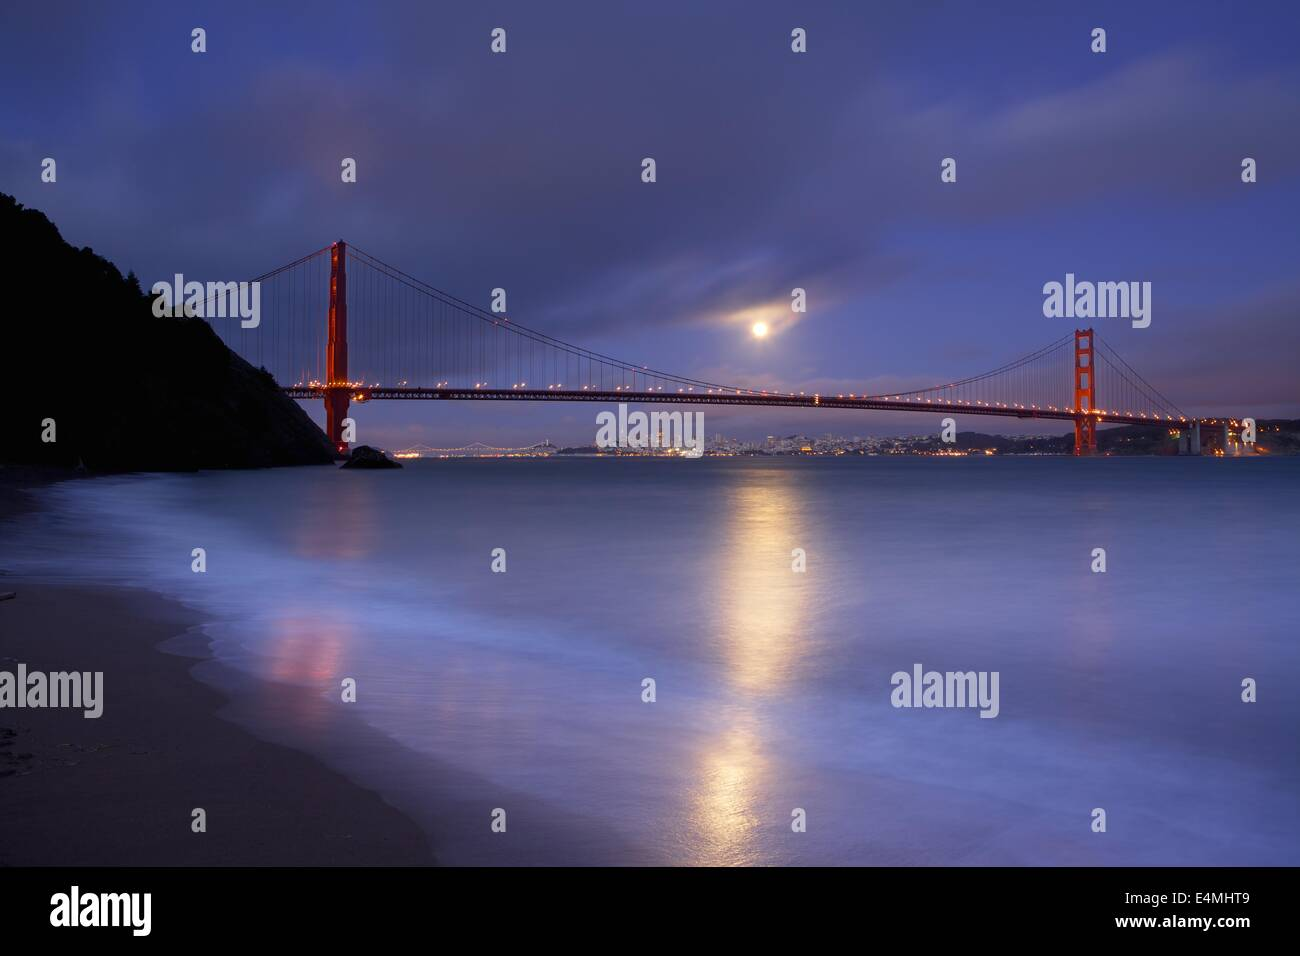 A full moon rises over San Francisco and the Golden Gate Bridge from Kirby Cove in the Marin Headlands. - Stock Image